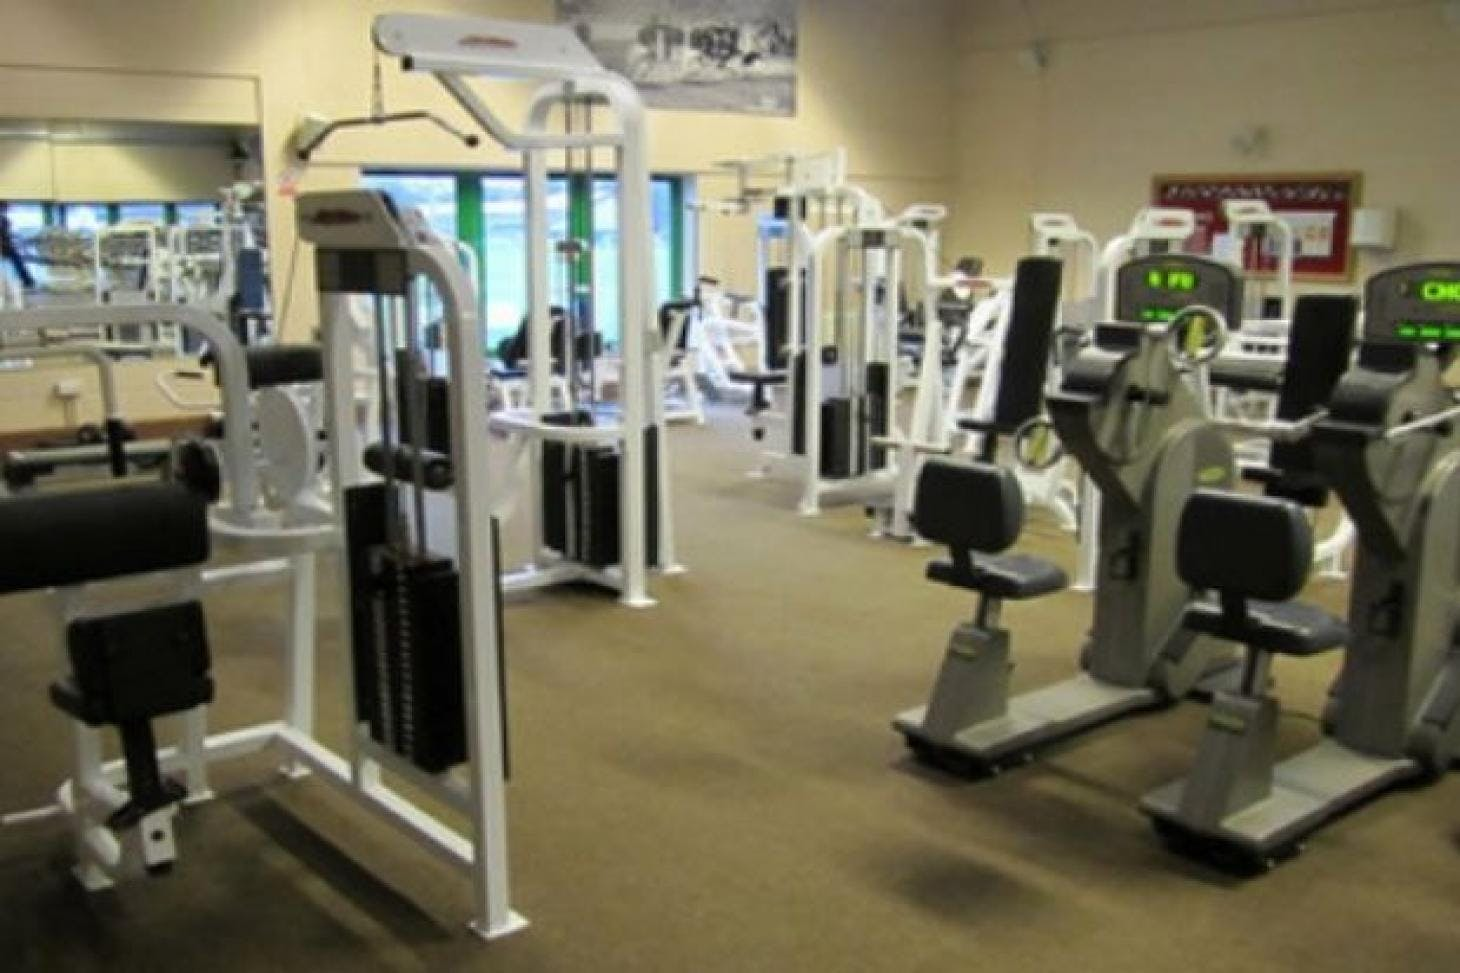 Bellingham Leisure & Lifestyle Centre Gym gym